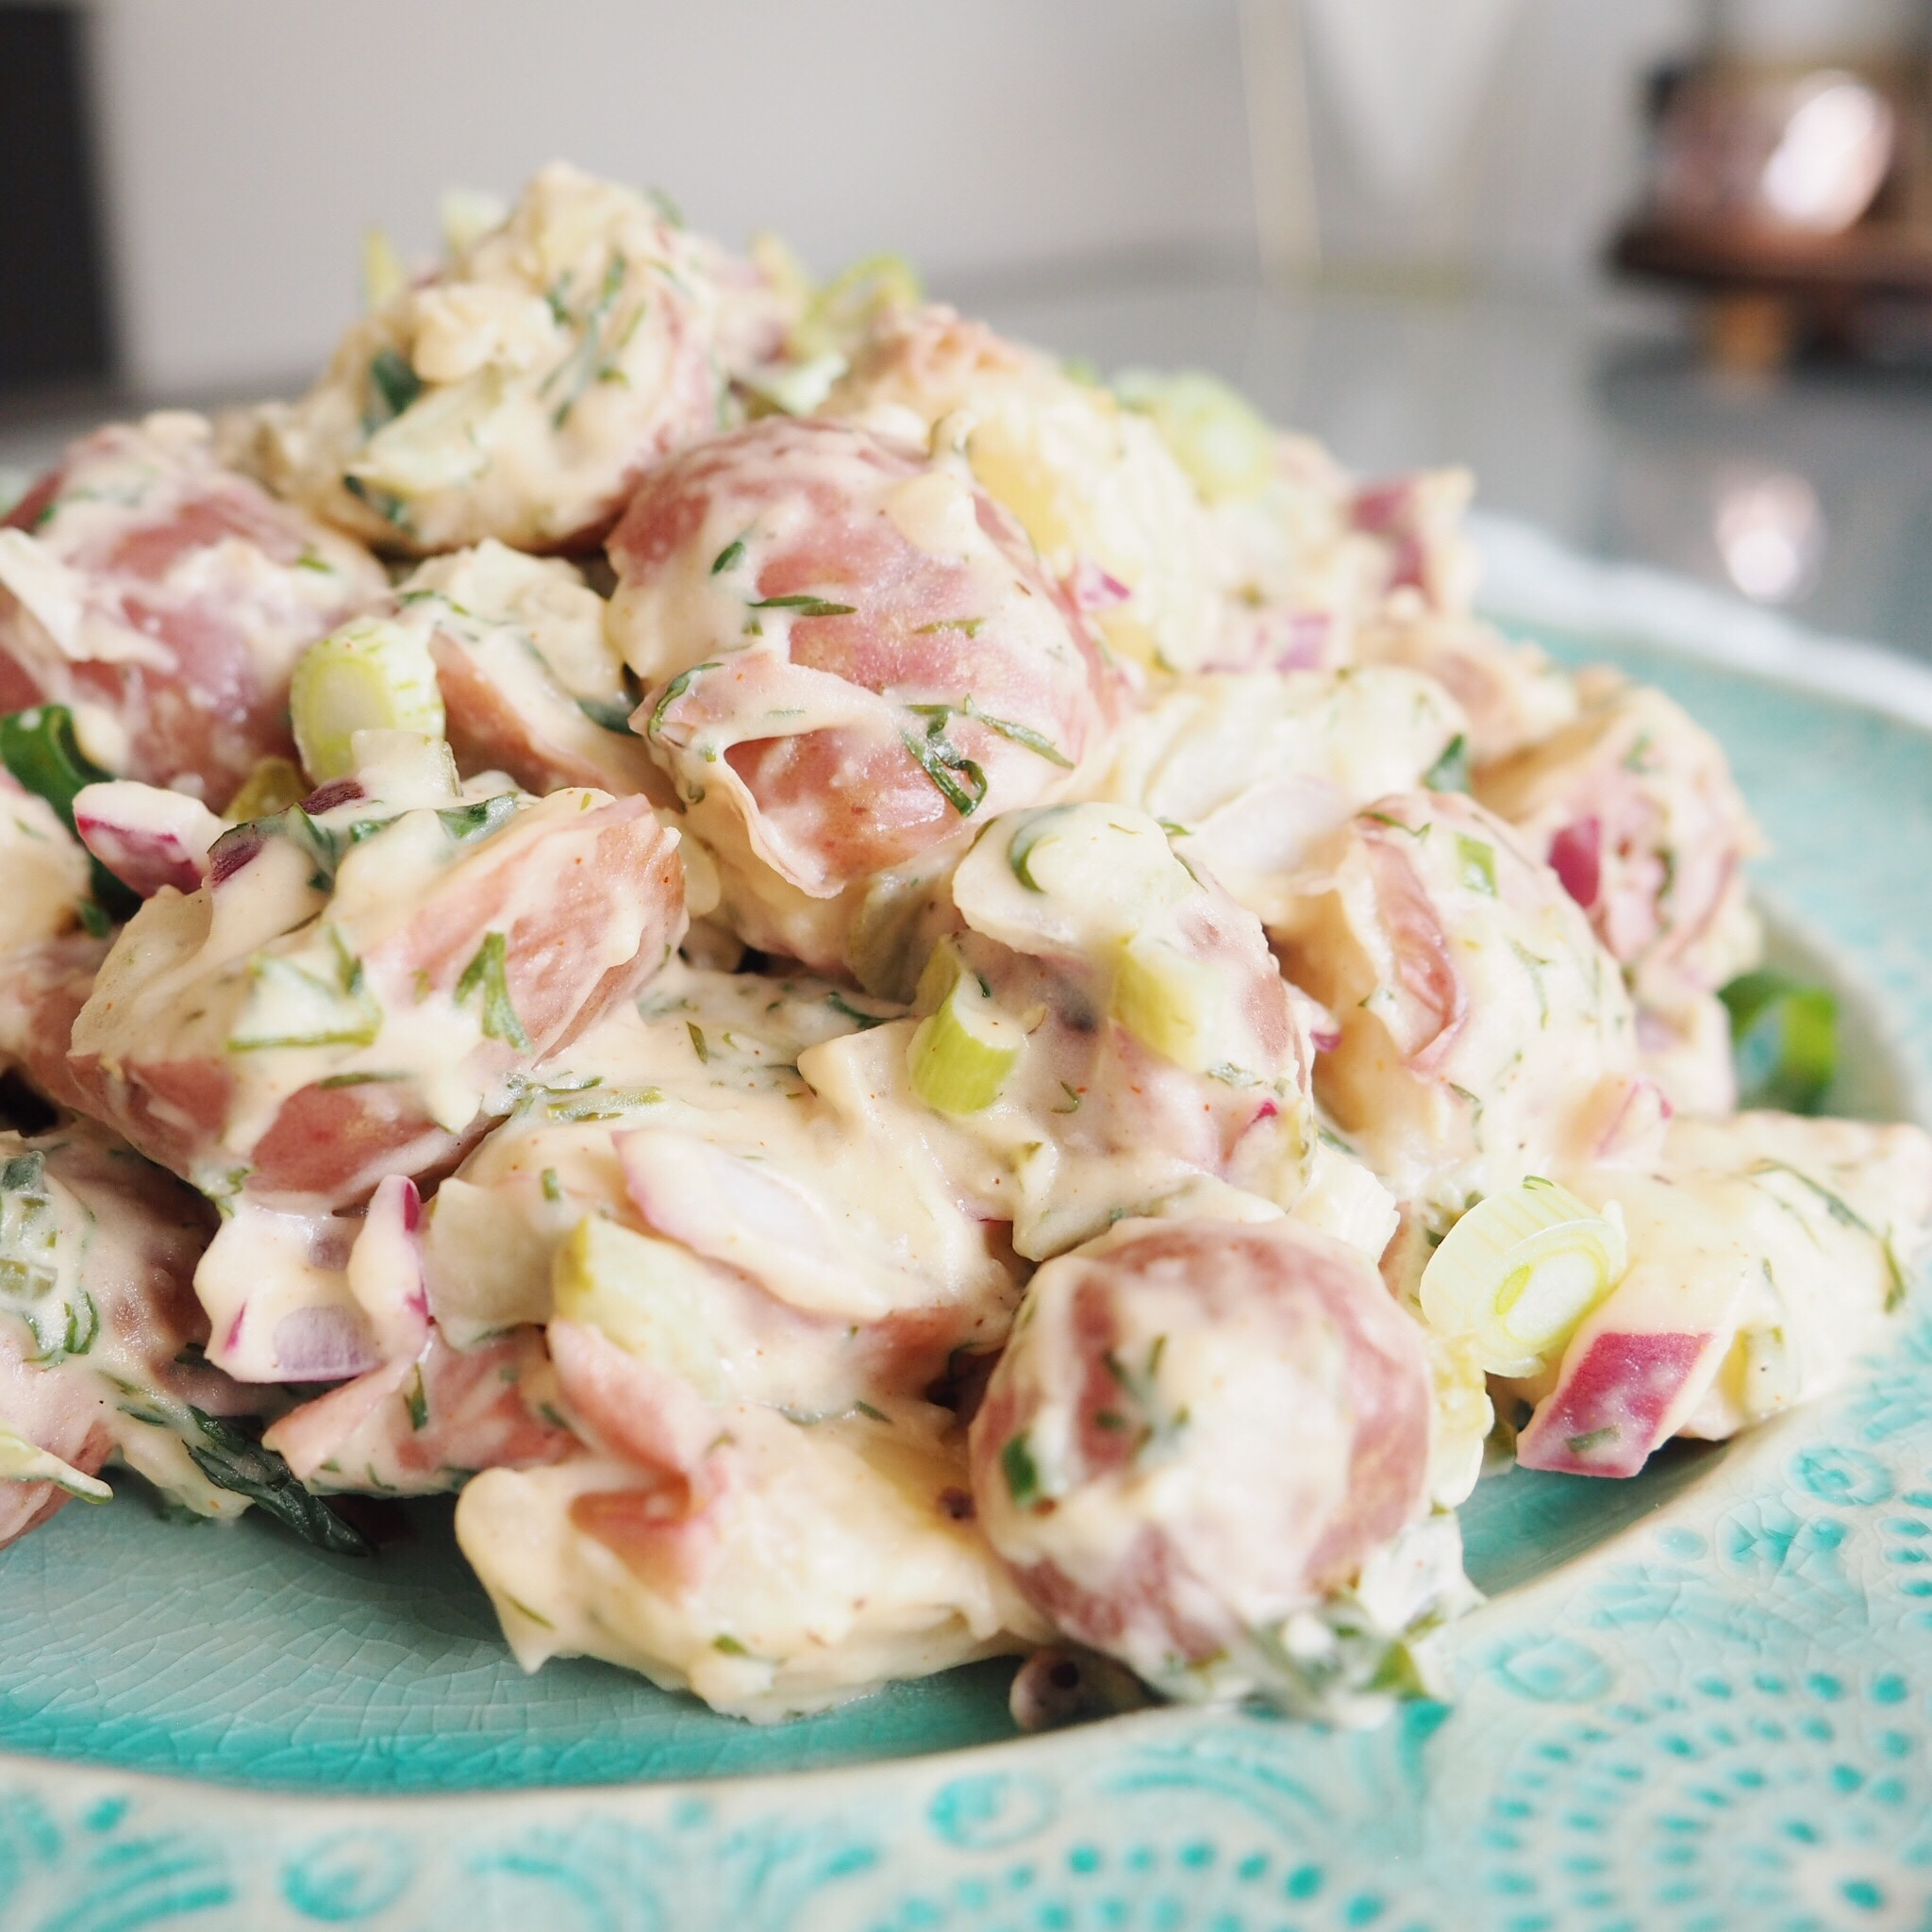 RECIPE | DILL PICKLE POTATO SALAD (VEGAN) — CHRISTIE AT HOME